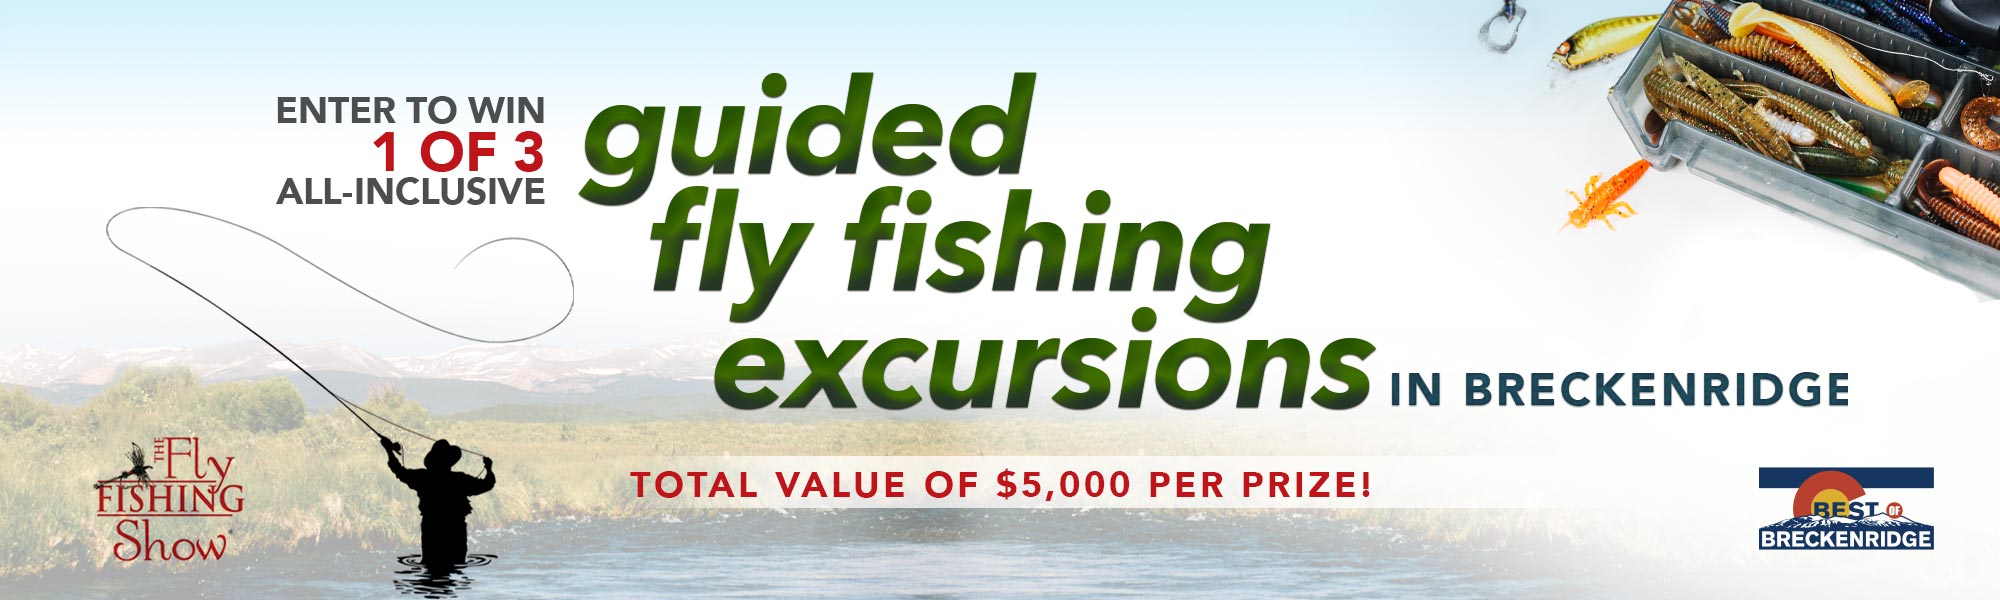 Fly-fishing-excursion-banner